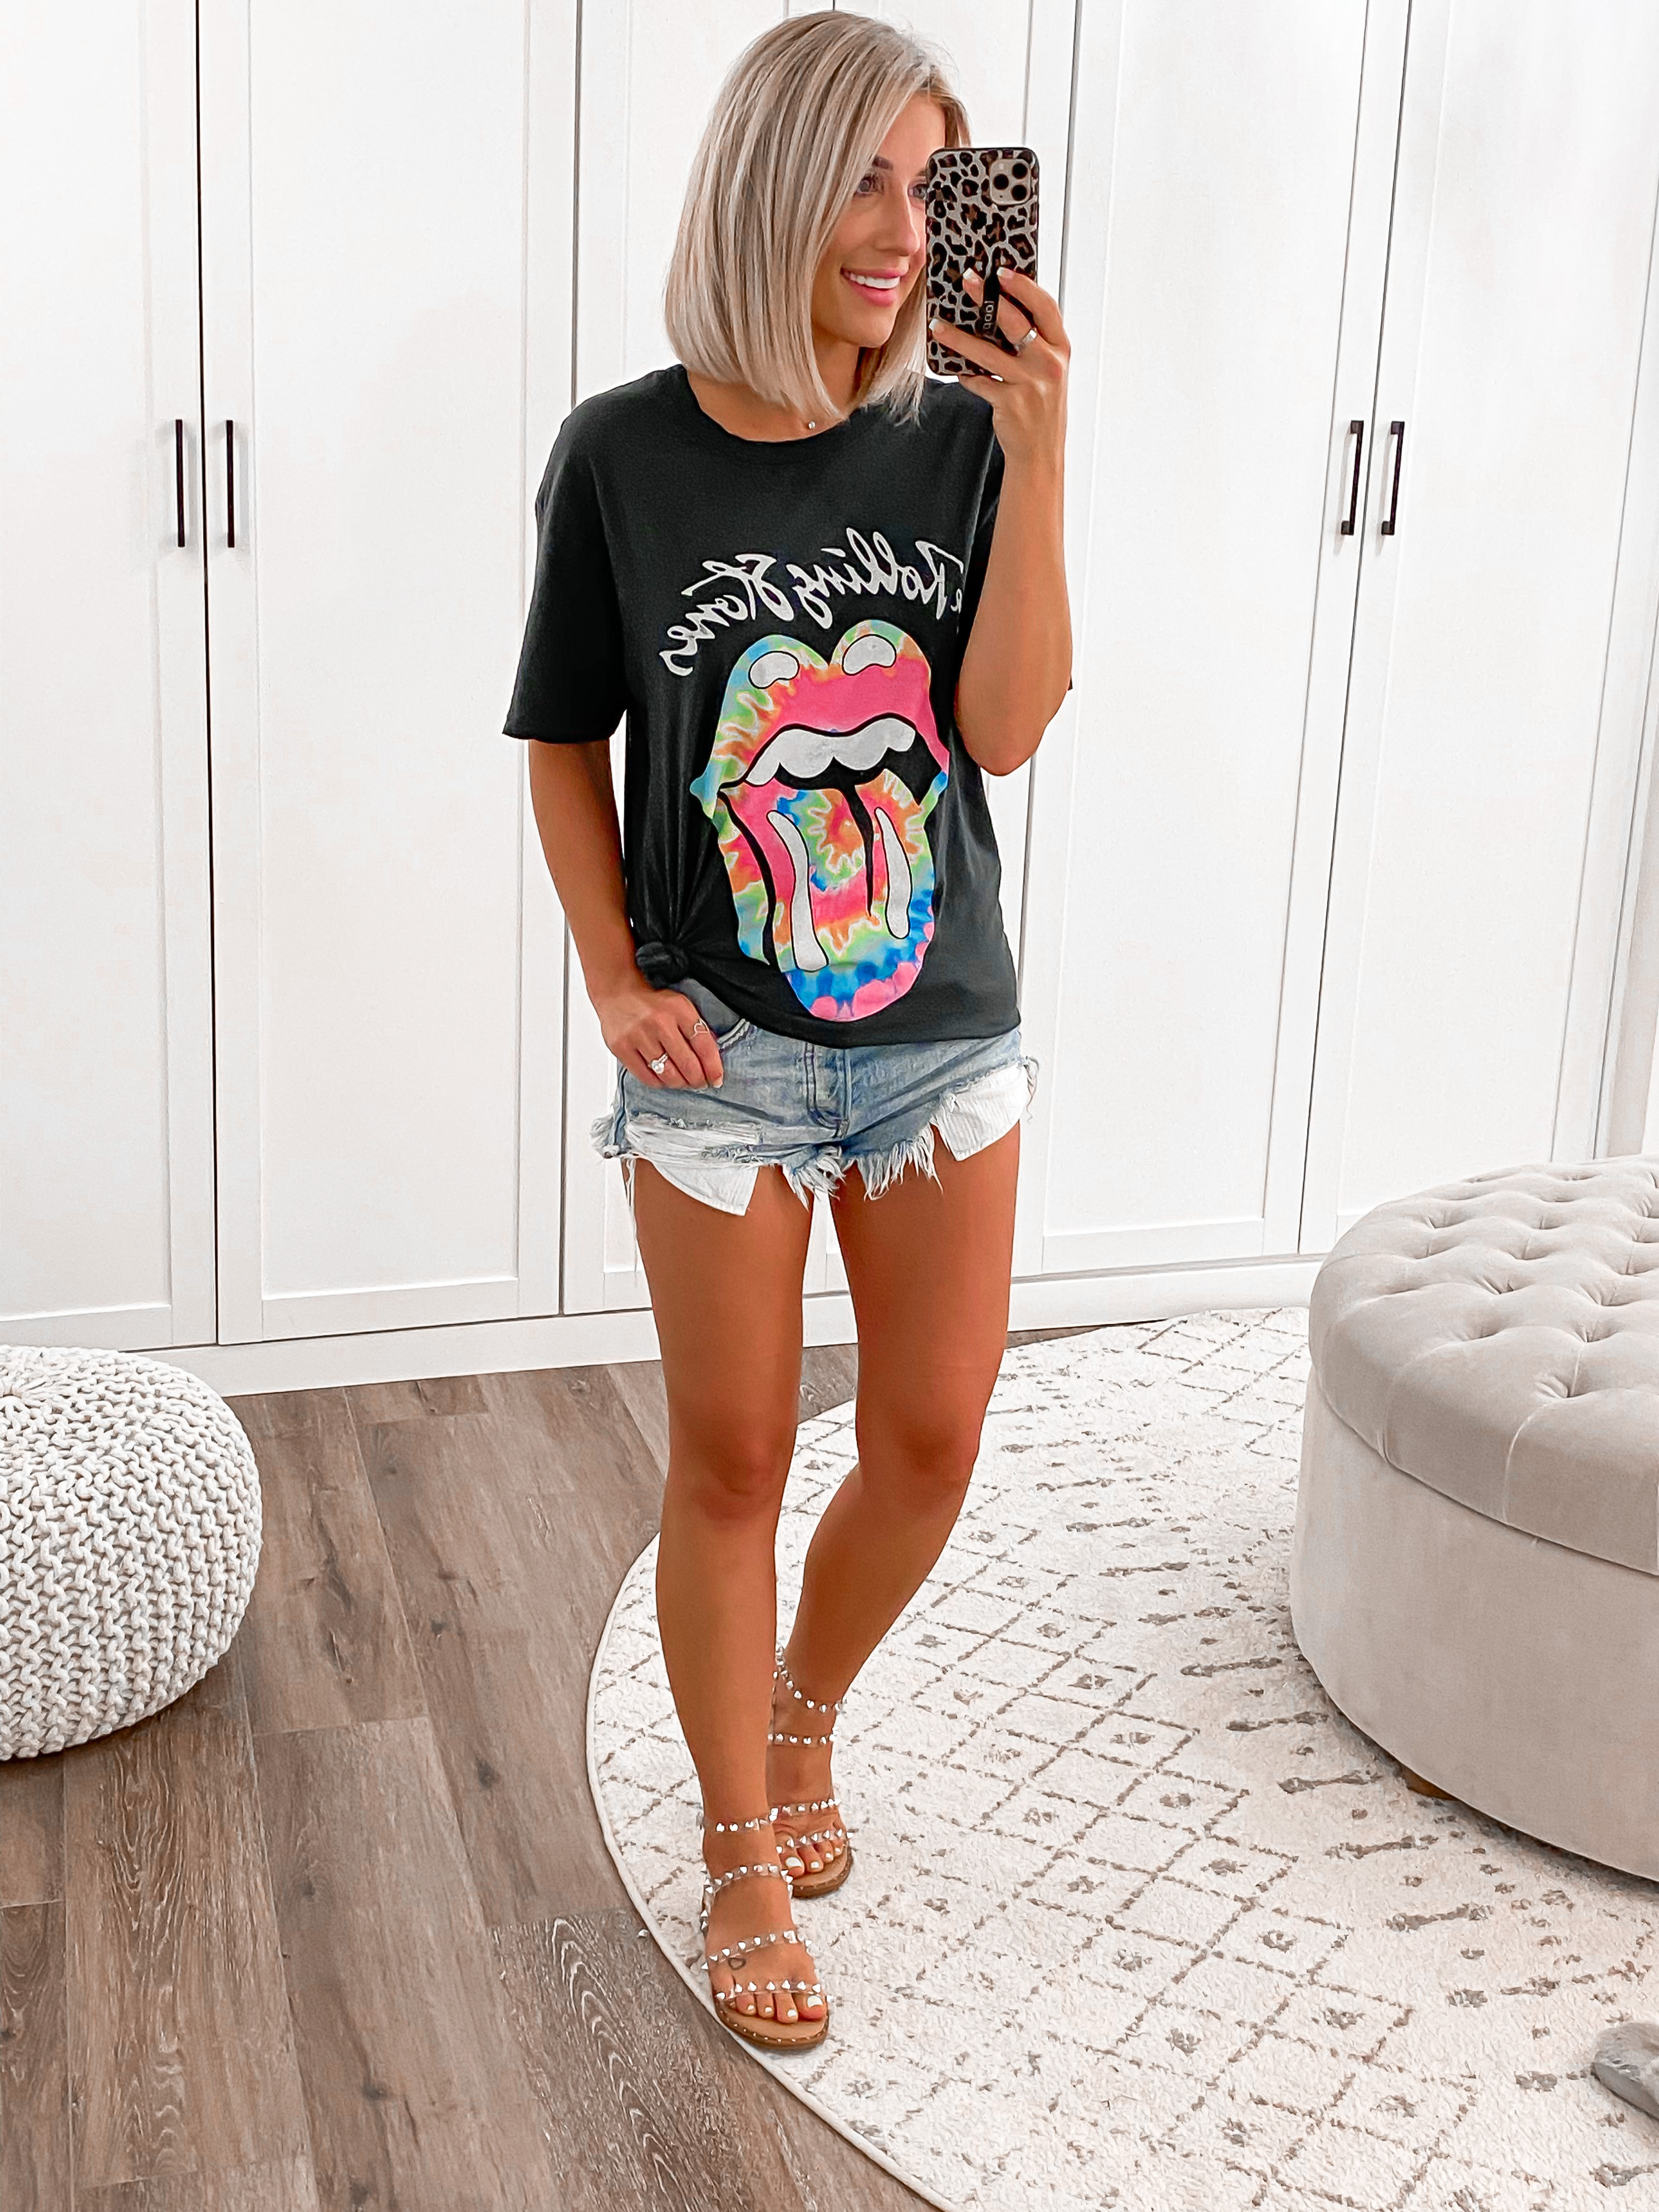 laura beverlin casual summer outfit idea rolling stones band tees graphic tshirts